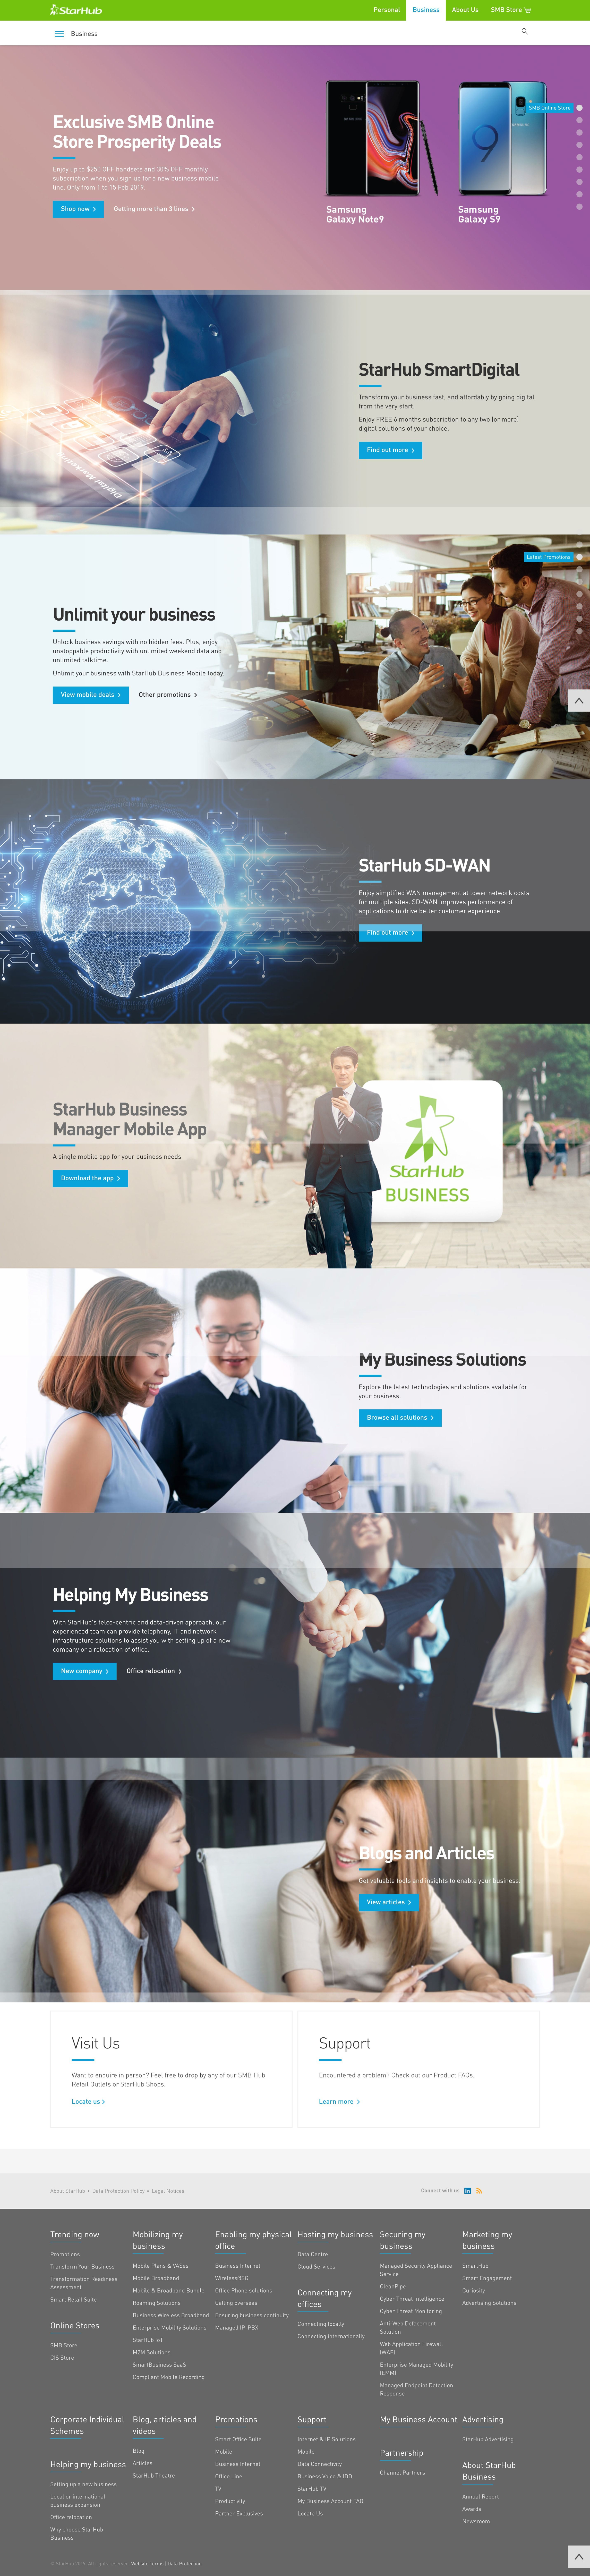 Pin by Caroline yee on Homepage Landing Page Design (With